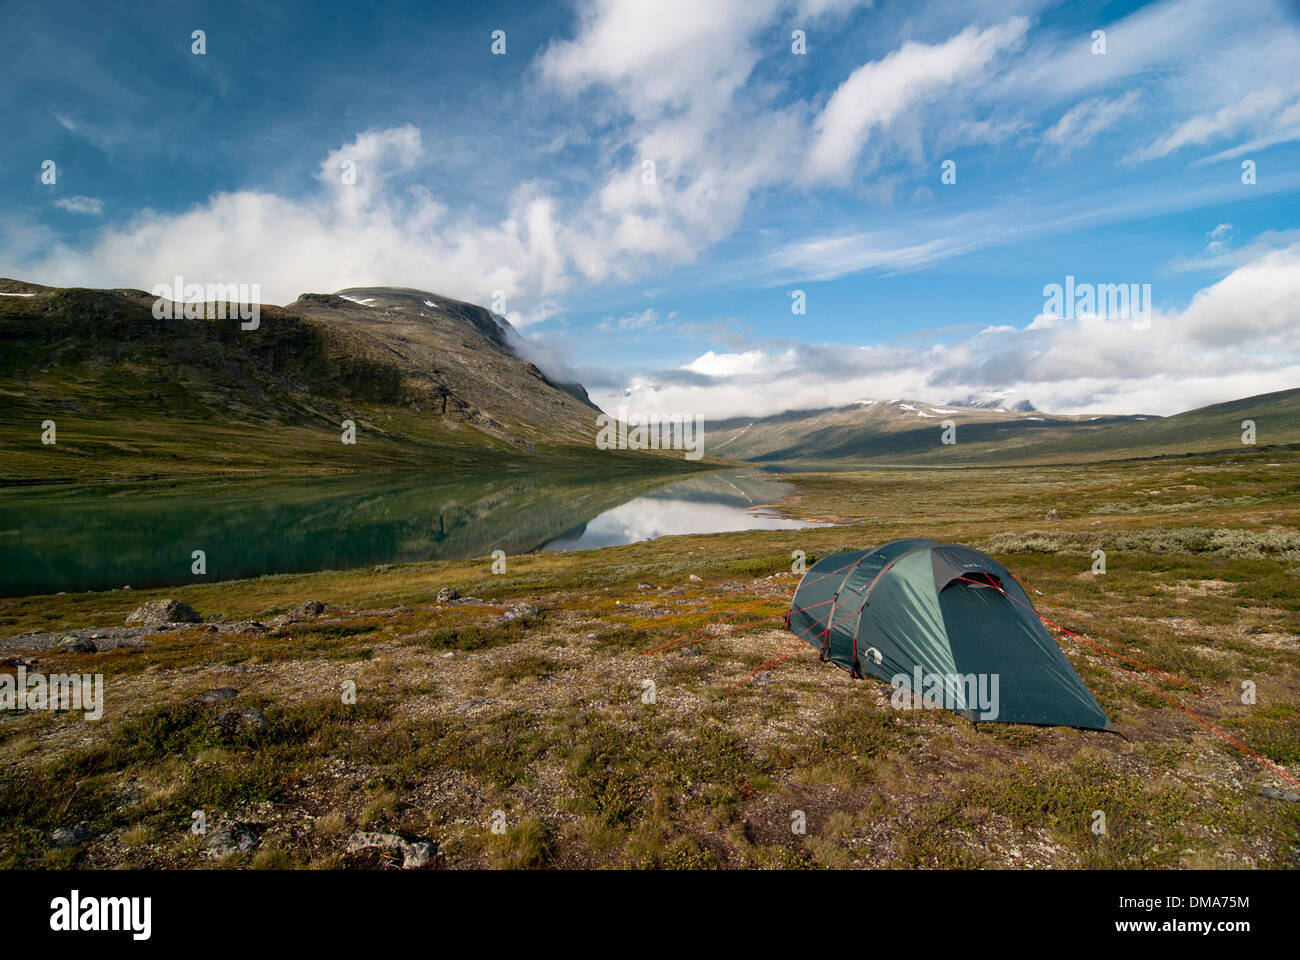 Tent on a mountain lake, national park Jotunheimen, Norway - Stock Image